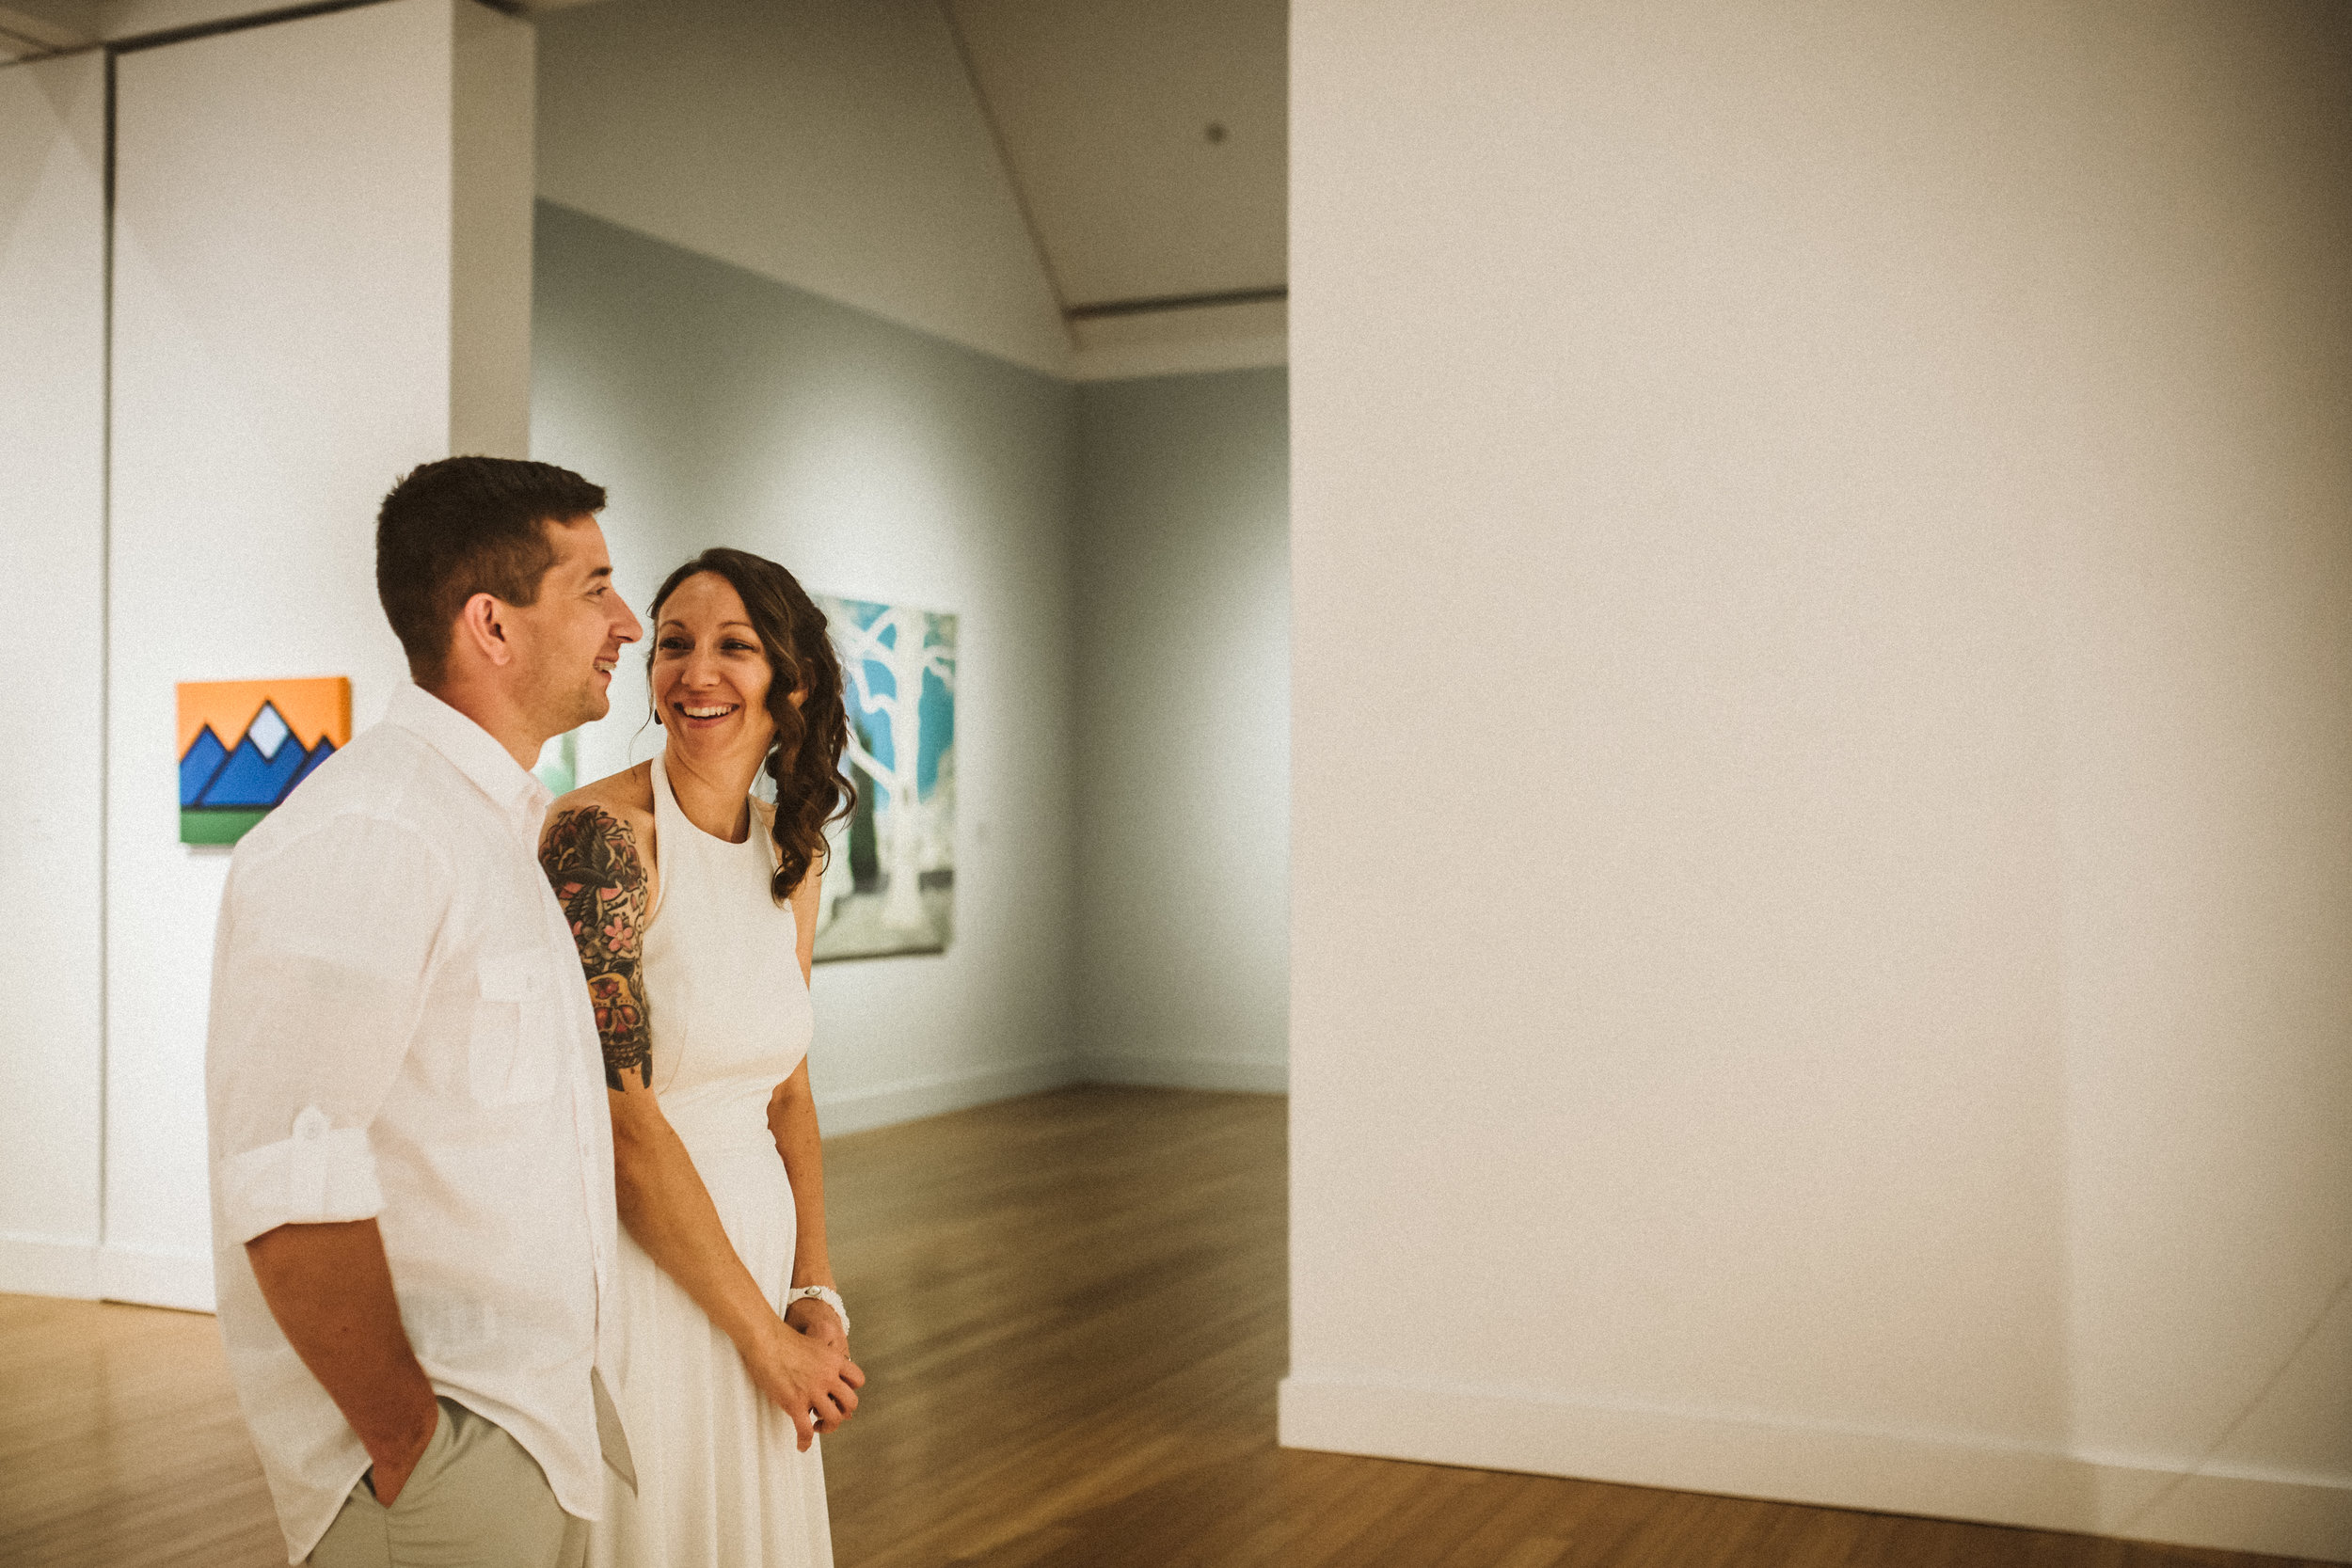 susanandkennethdorswitt.virginiaMOCA.virginiabeach.virginia.rebeccaburtphotography.art.wedding-176.jpg